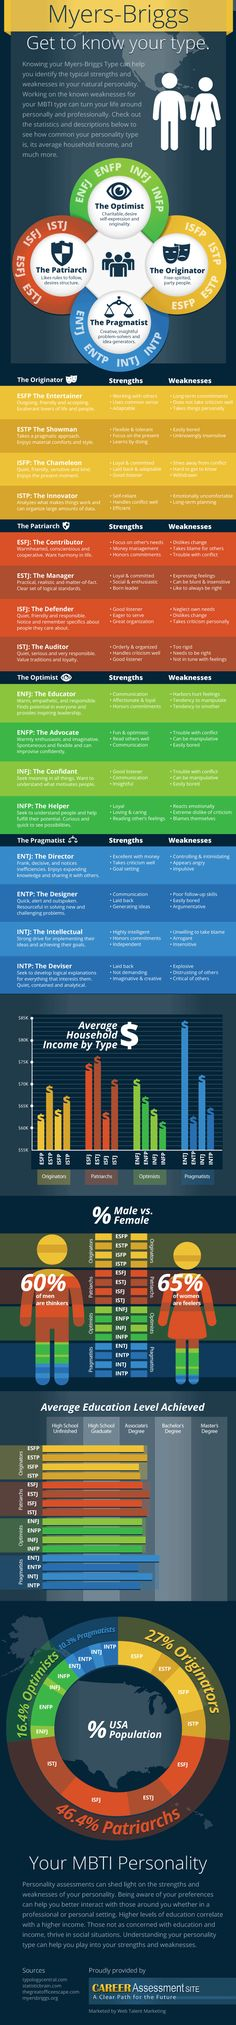 How Much Money Will Your Personality Type Make for You? #infographic #PersonalityType #Career